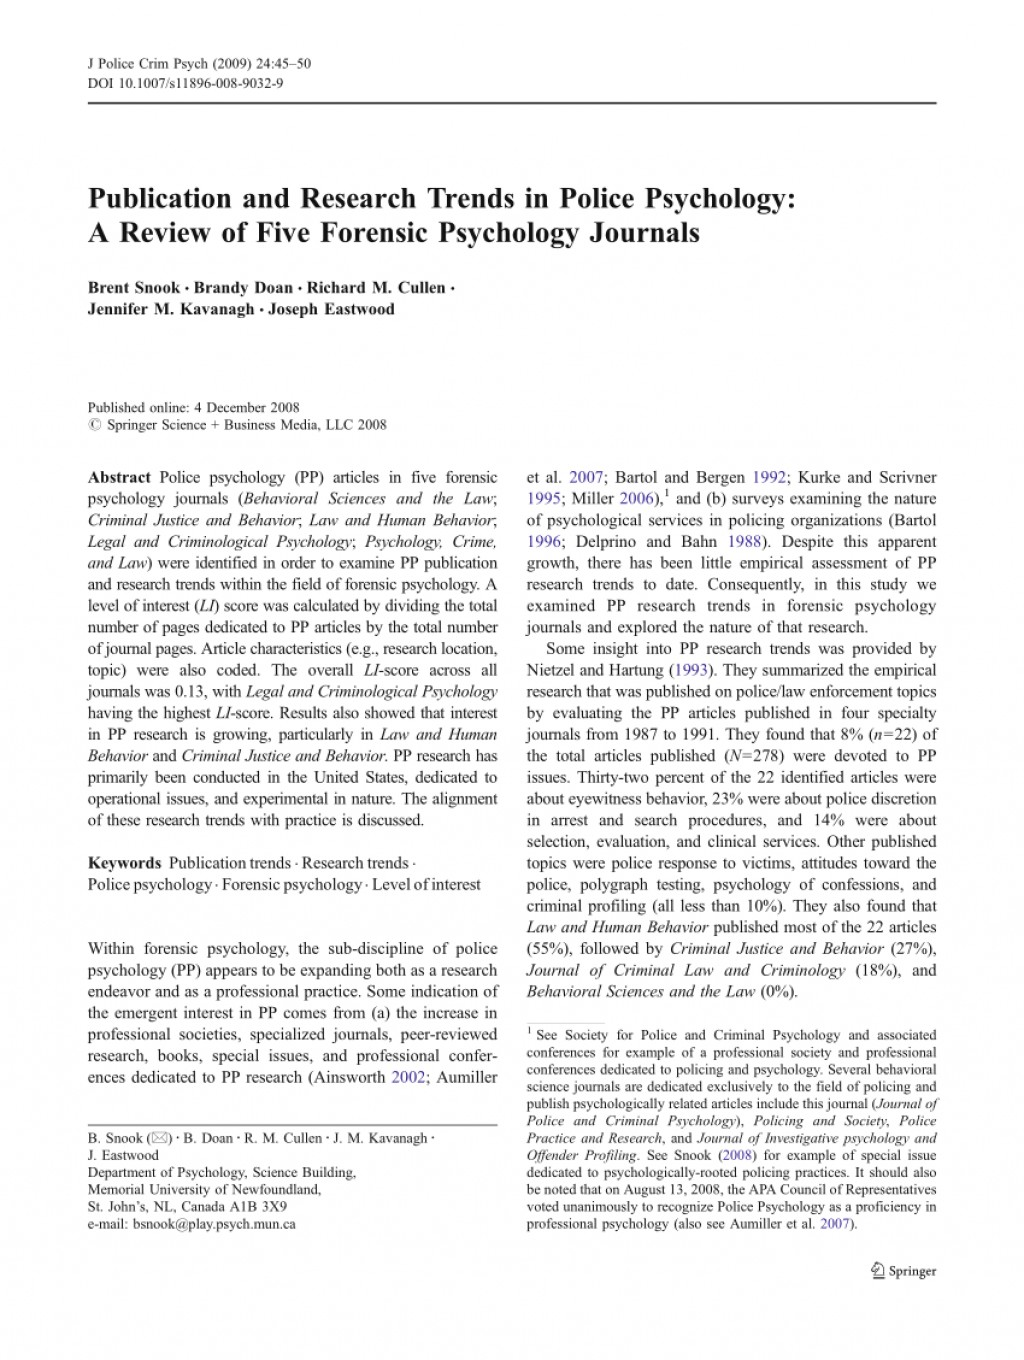 015 Forensic Psychology Topics For Research Paper Unique Large